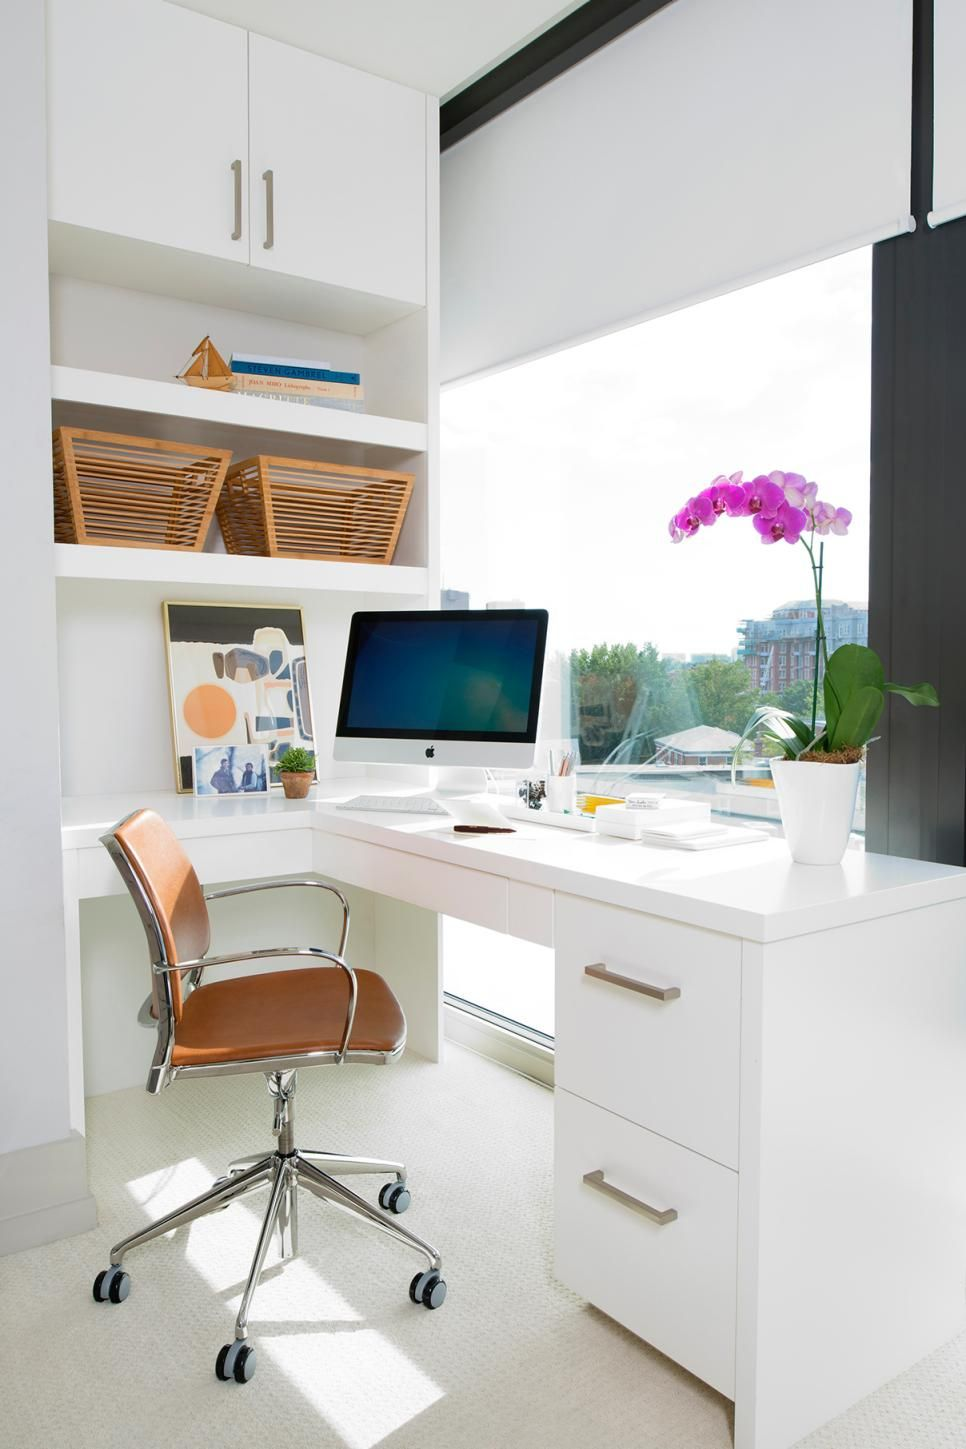 This sleek modern home office features a built in desk with plenty of storage and a large window to allow lots of natural light to fill the space